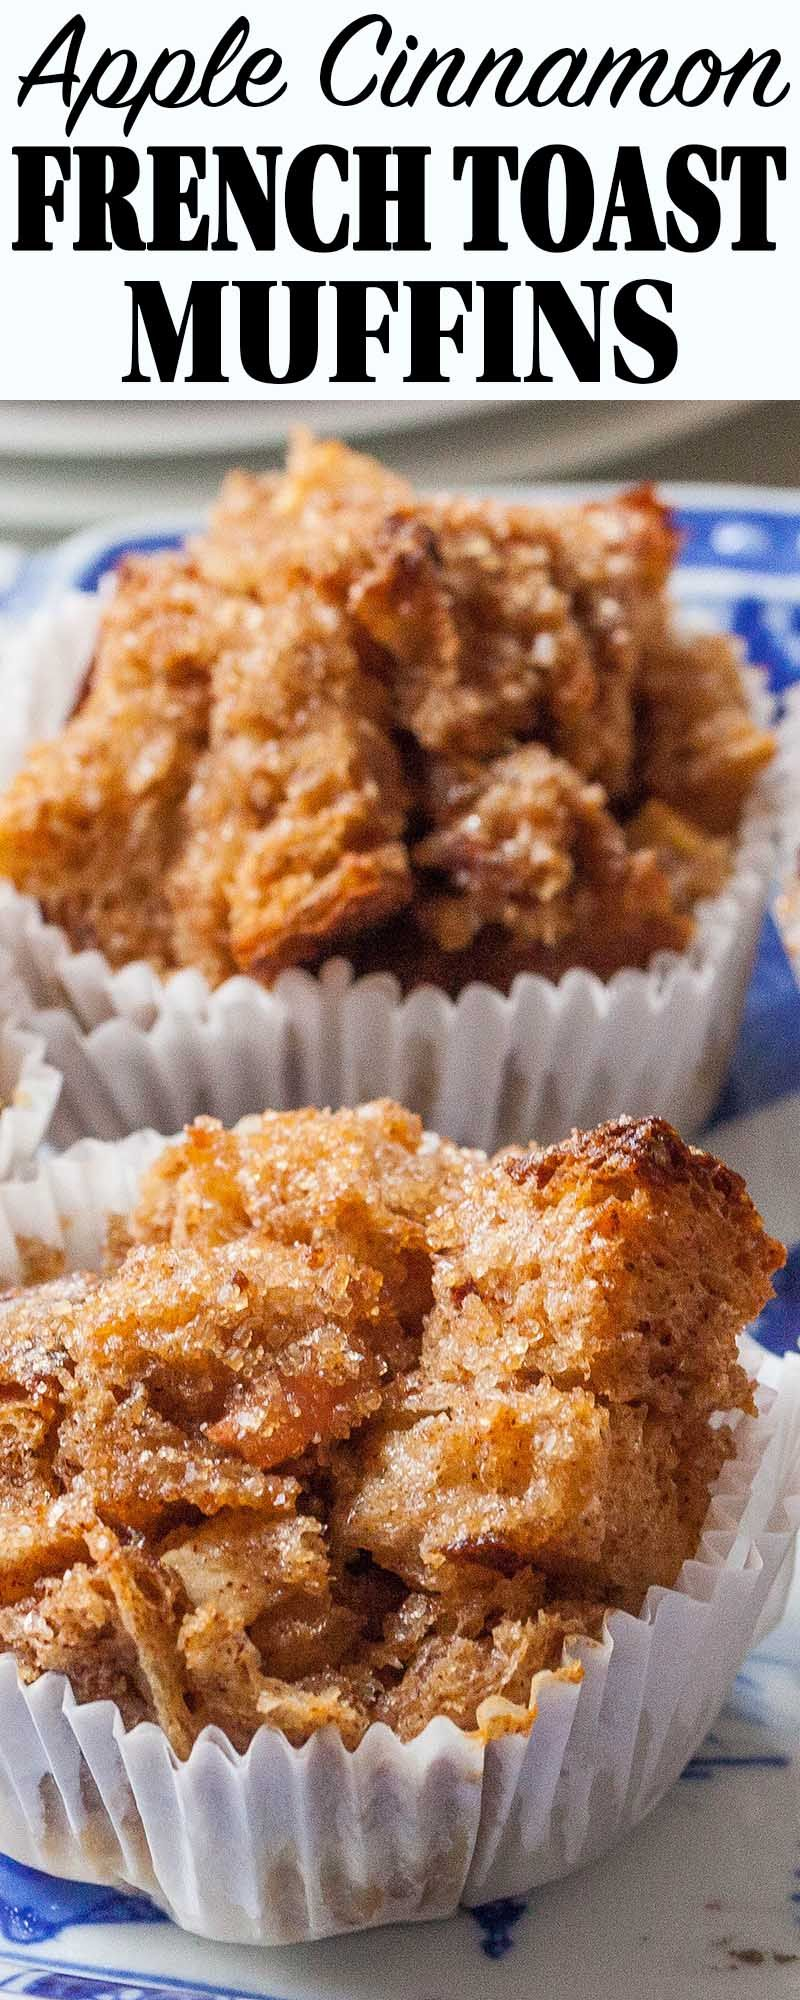 Apple-Cinnamon French Toast Muffins! Bake them right away or the next morning. Leftovers reheat well for weekday breakfasts.